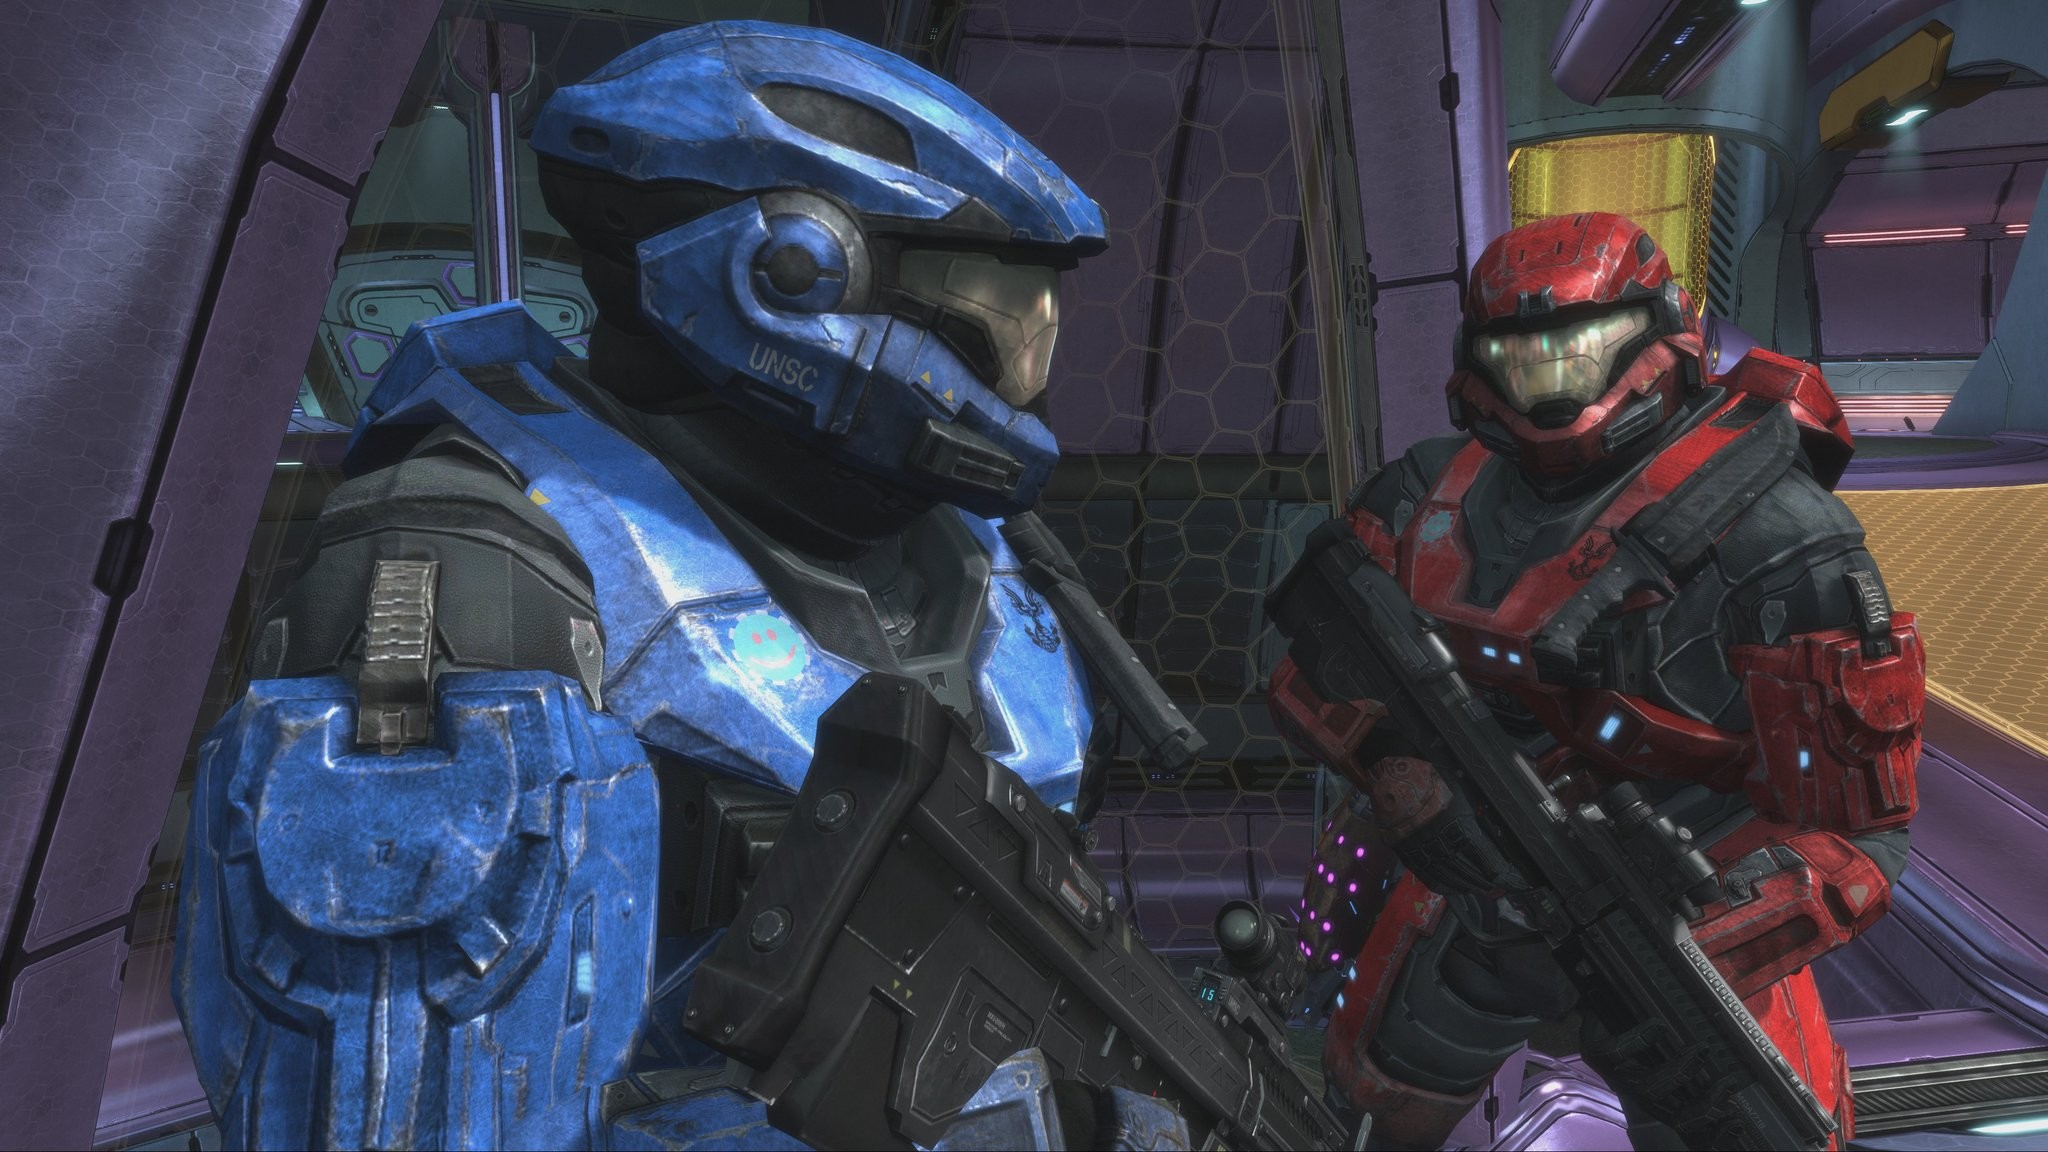 Halo Reach Release Dates On Pc And Xbox One May Have Leaked On